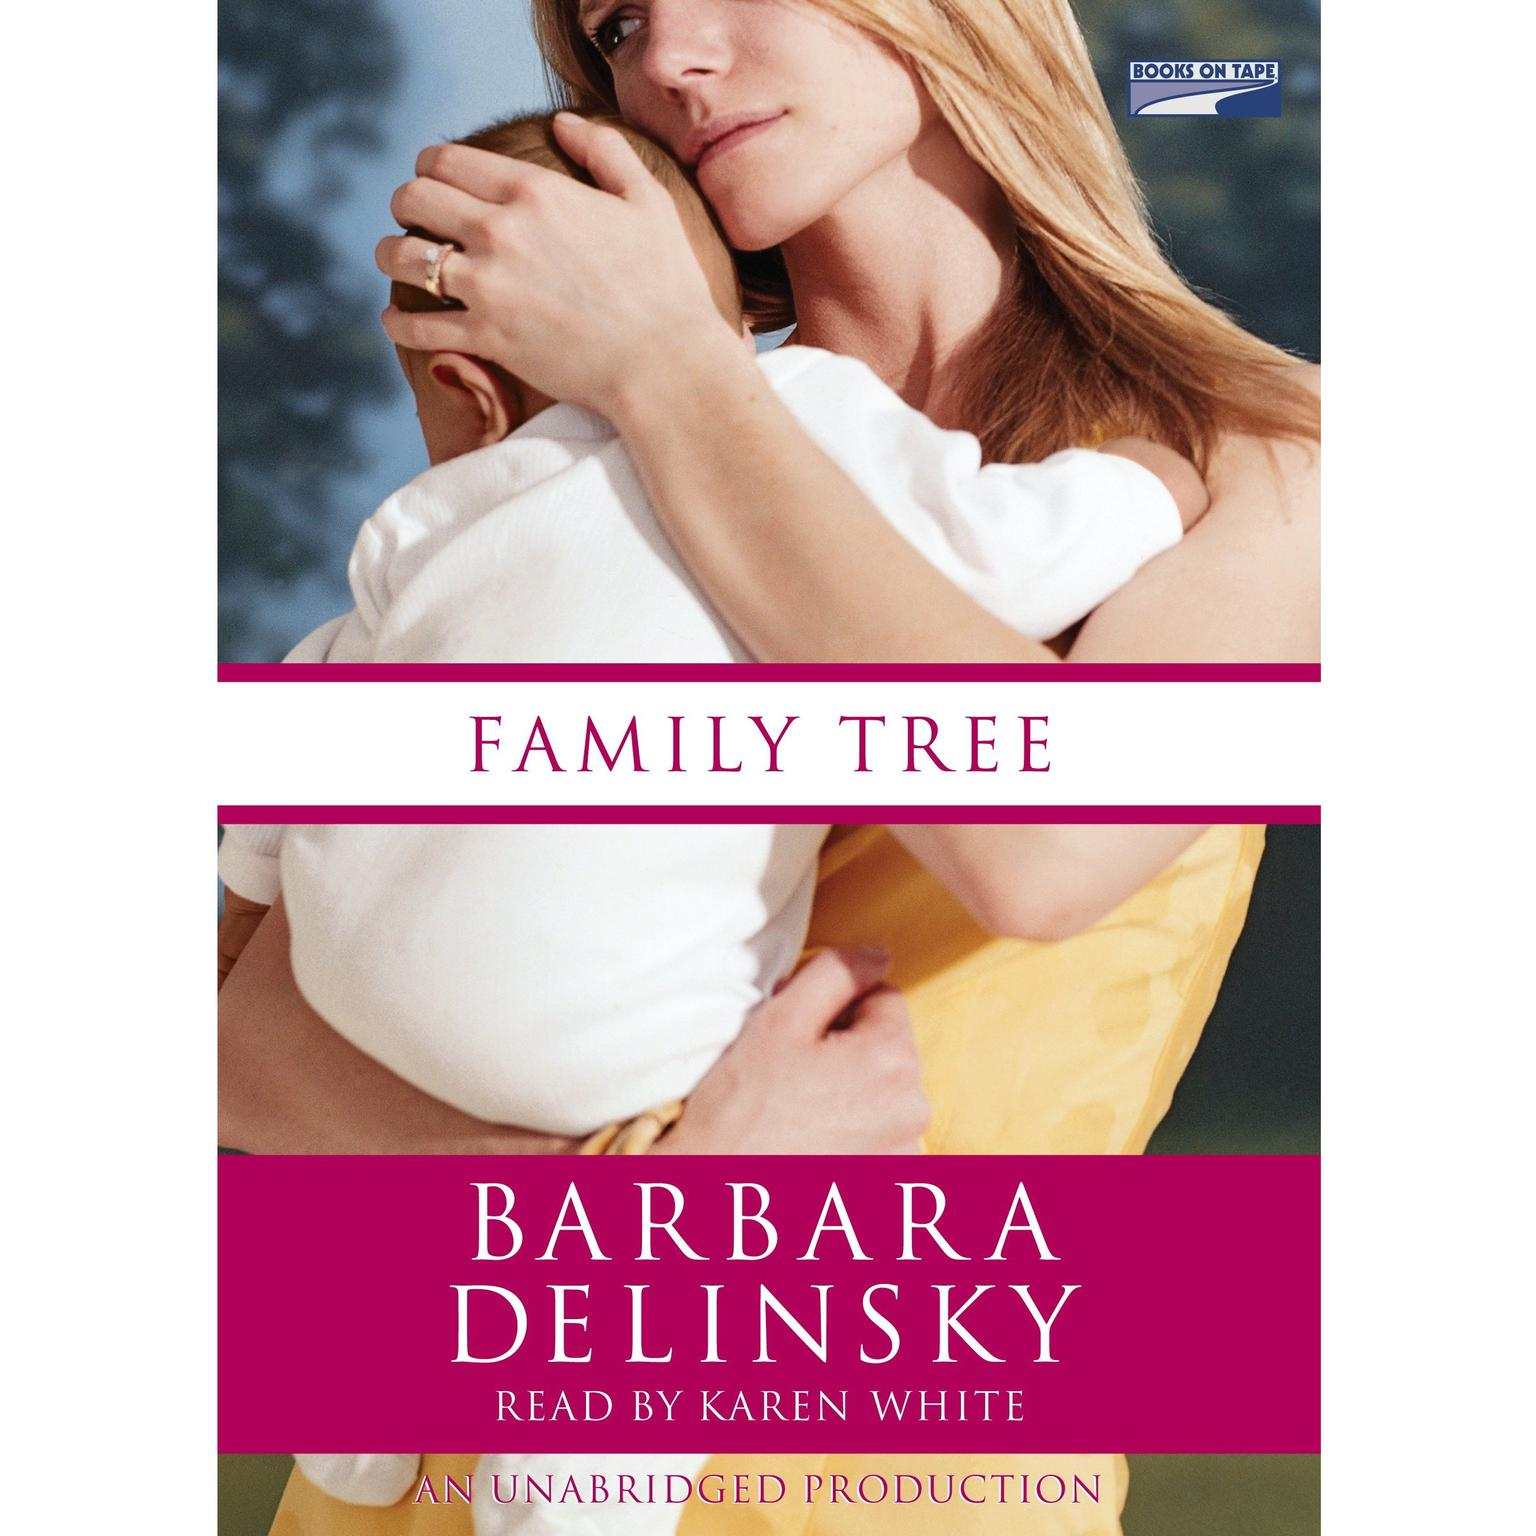 Libros Torrent Epub Barbara Delinsky Family Tree Epub Gratis